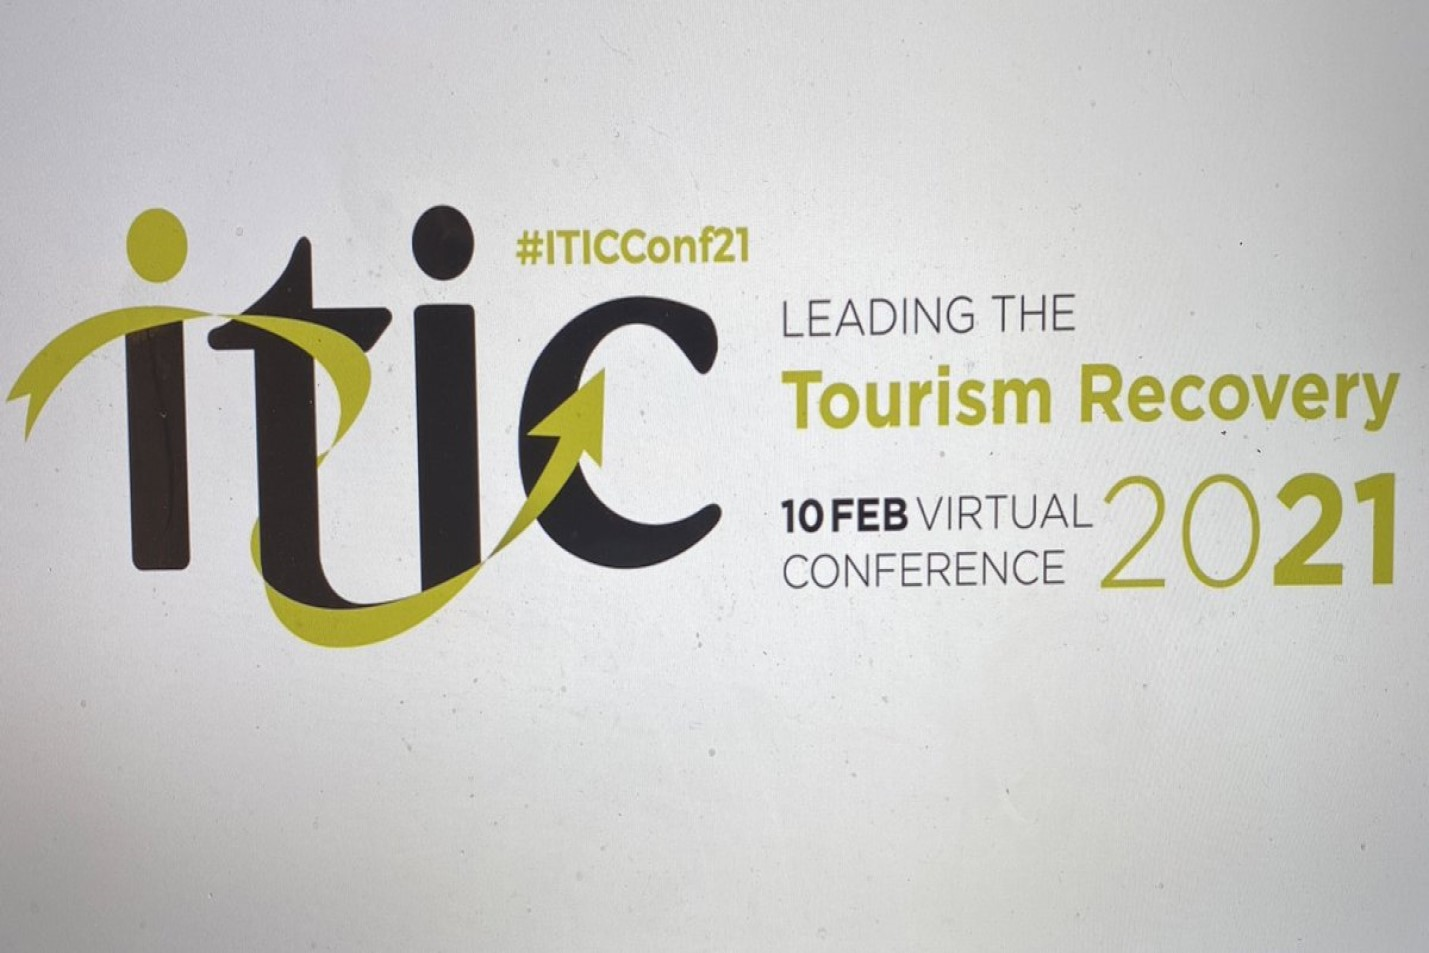 ITIC Conference 2021